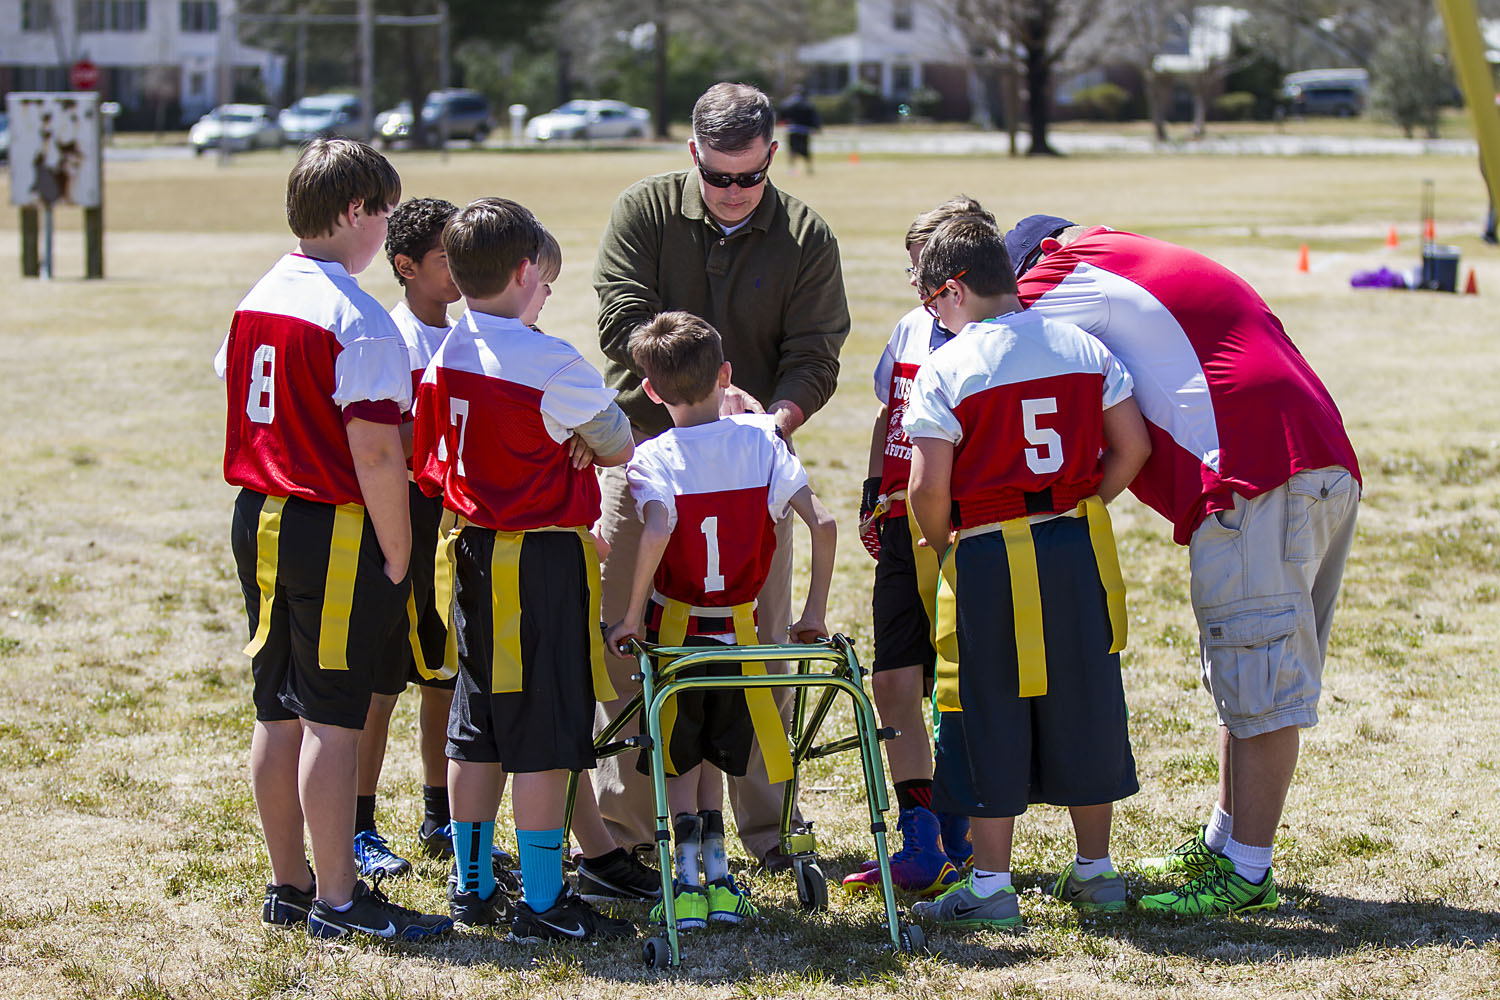 Foundation established for Trussville youth sports – The Trussville